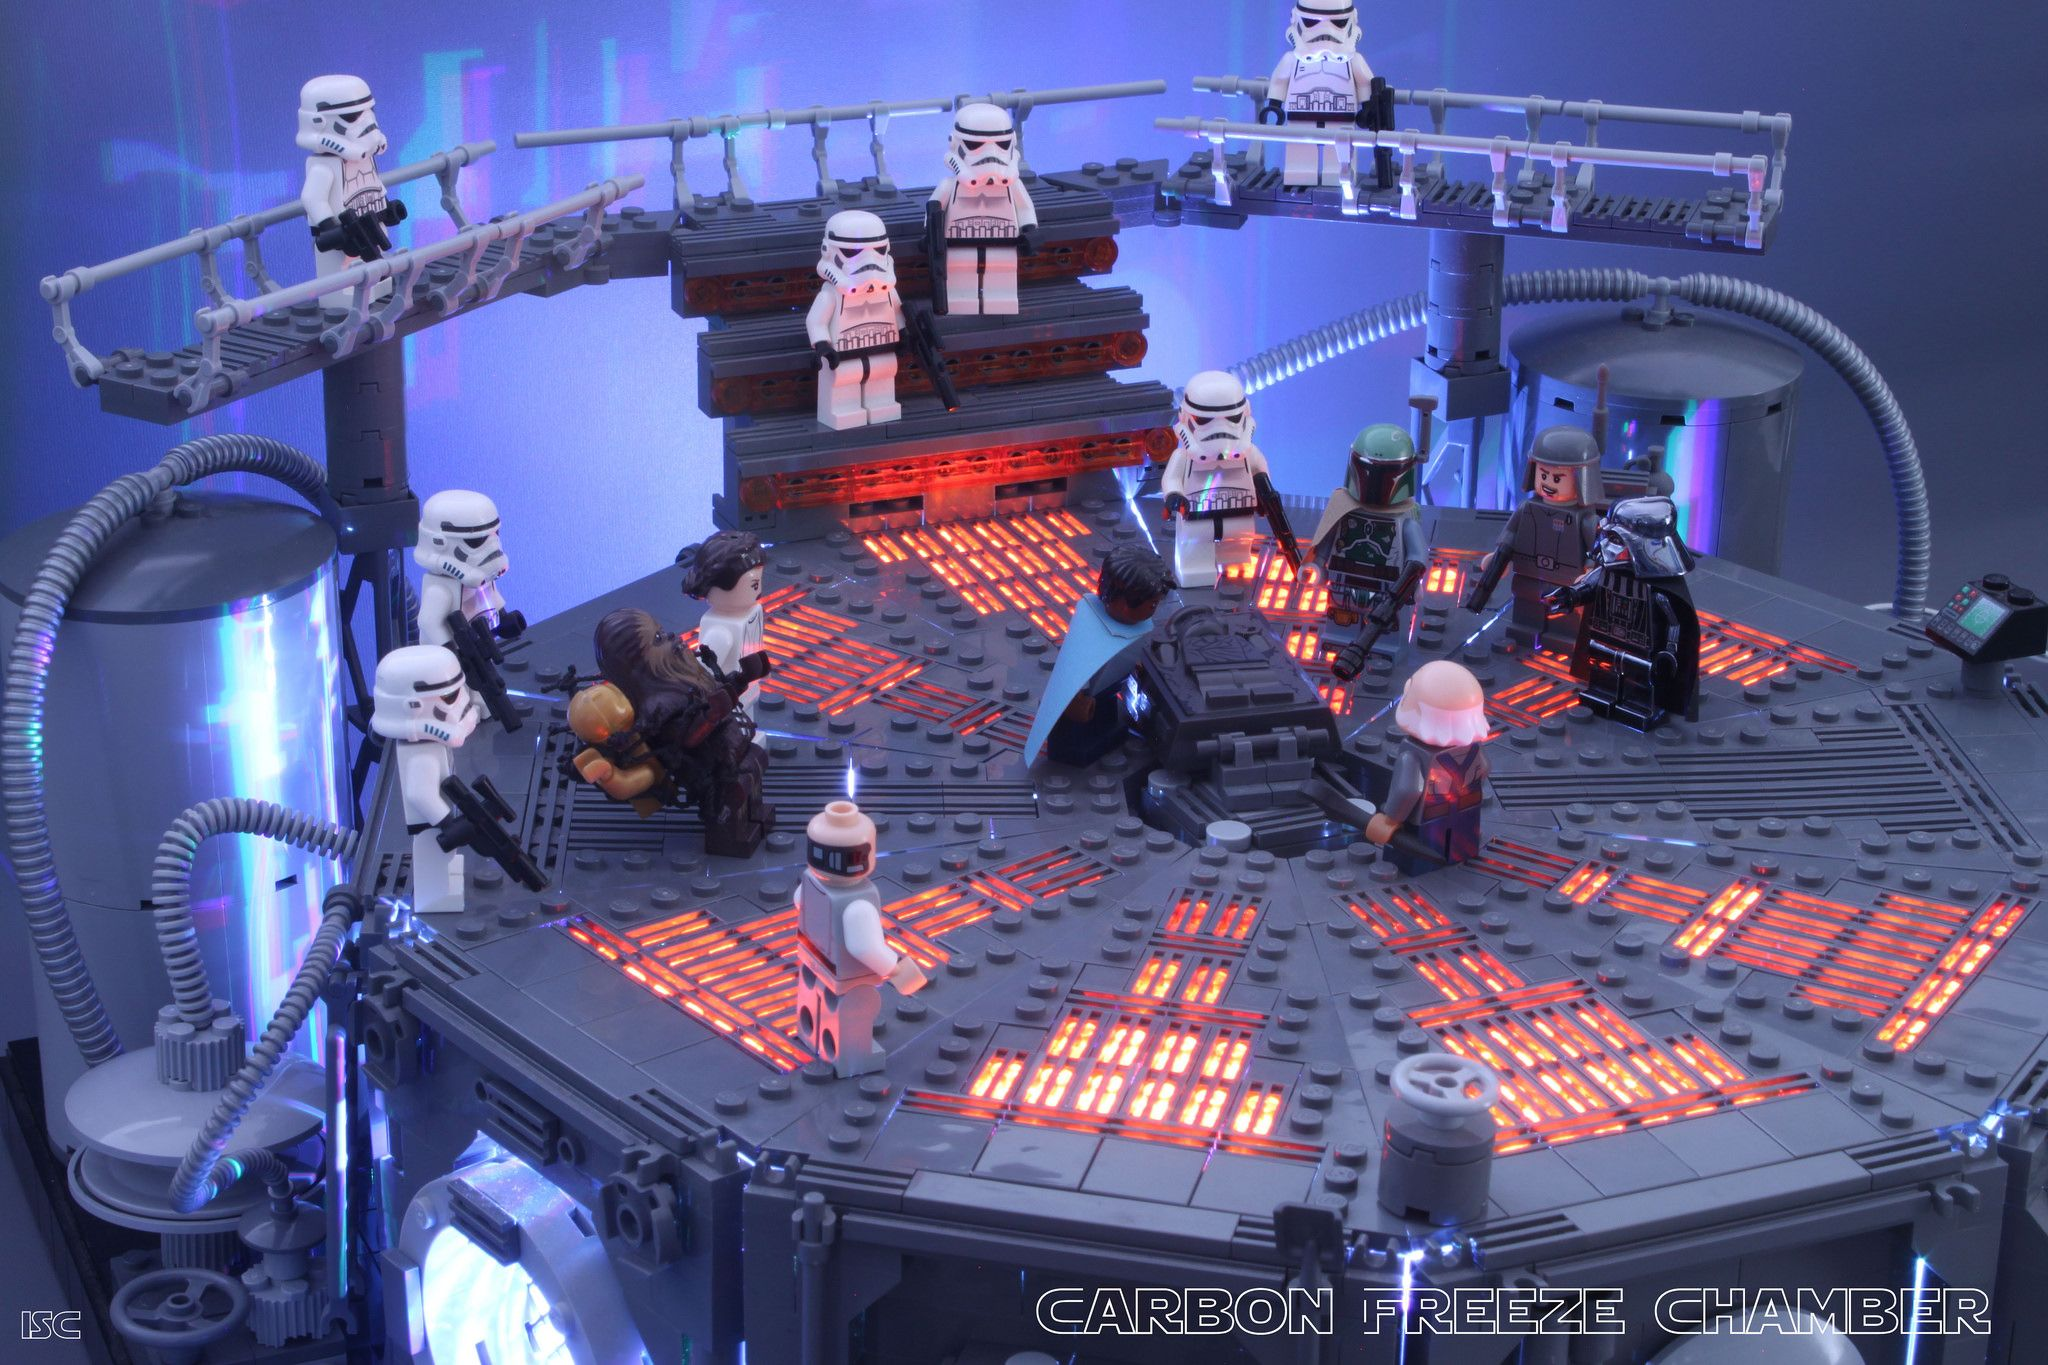 LEGO Star Wars Carbon Freezing Chamber *NO MINIFIGURES* from set 75137